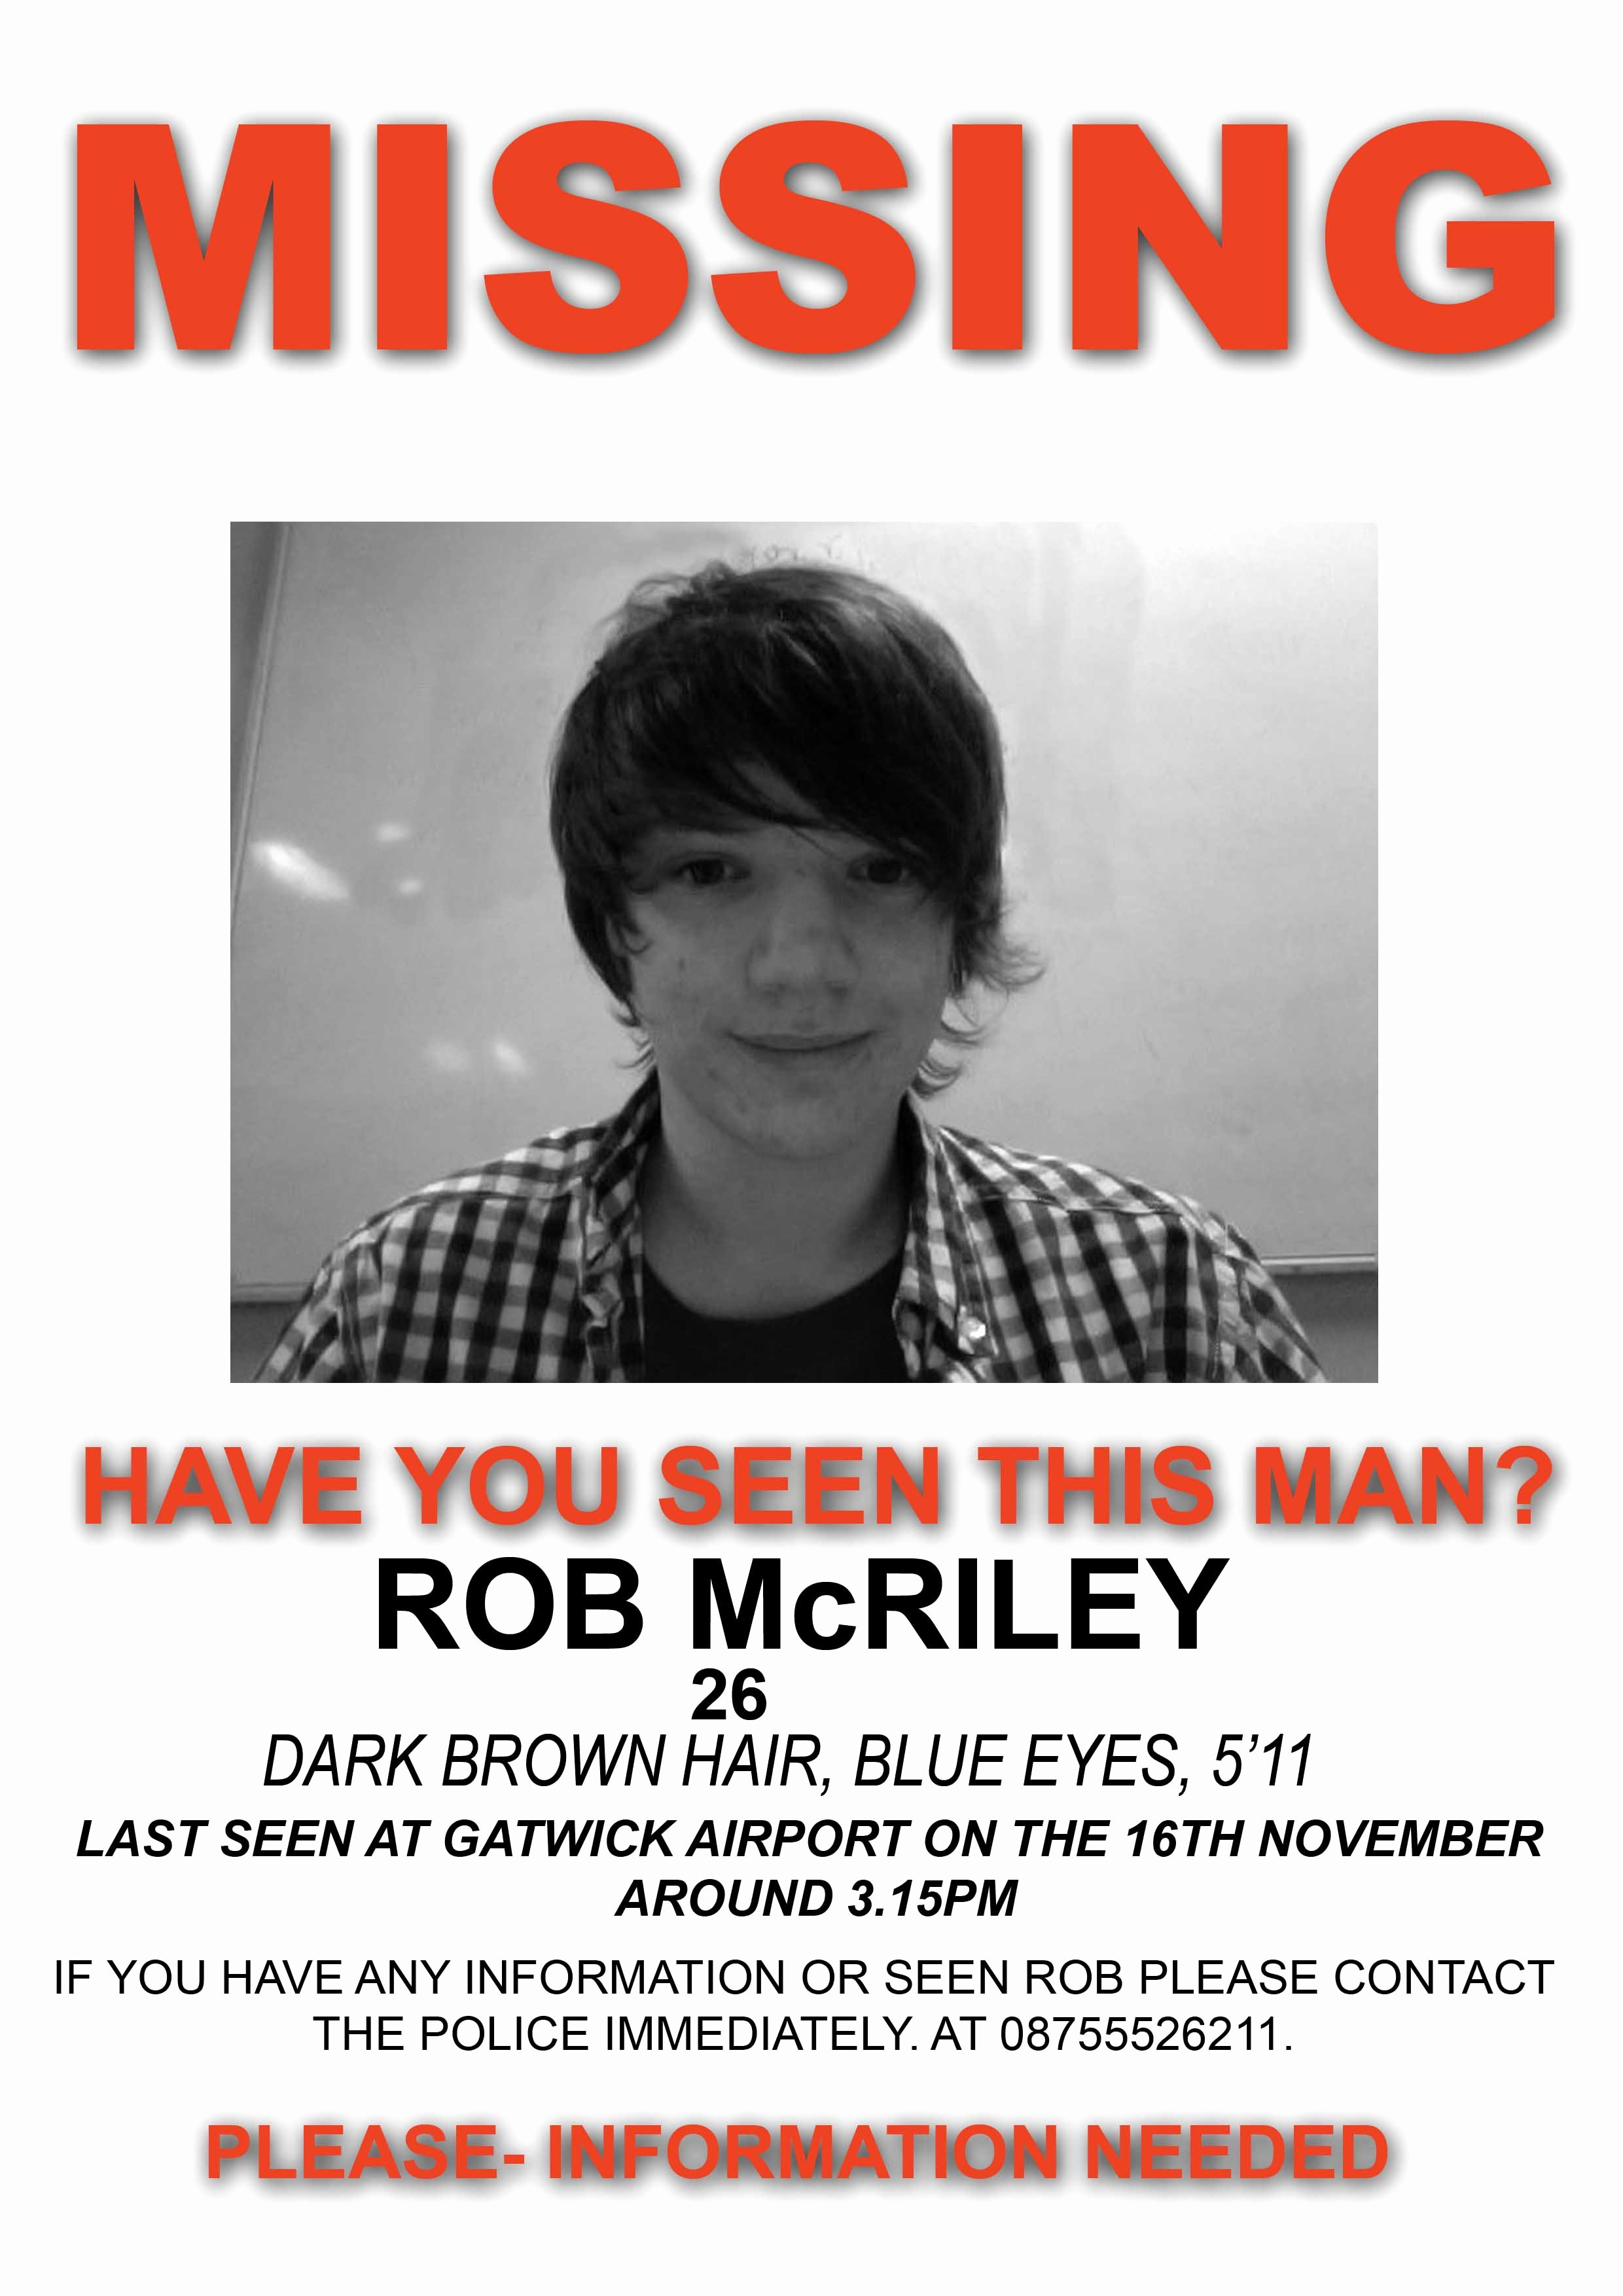 Missing Persons Flyer Template Fresh Creating A Missing Poster for Rob Mcriley Post 1